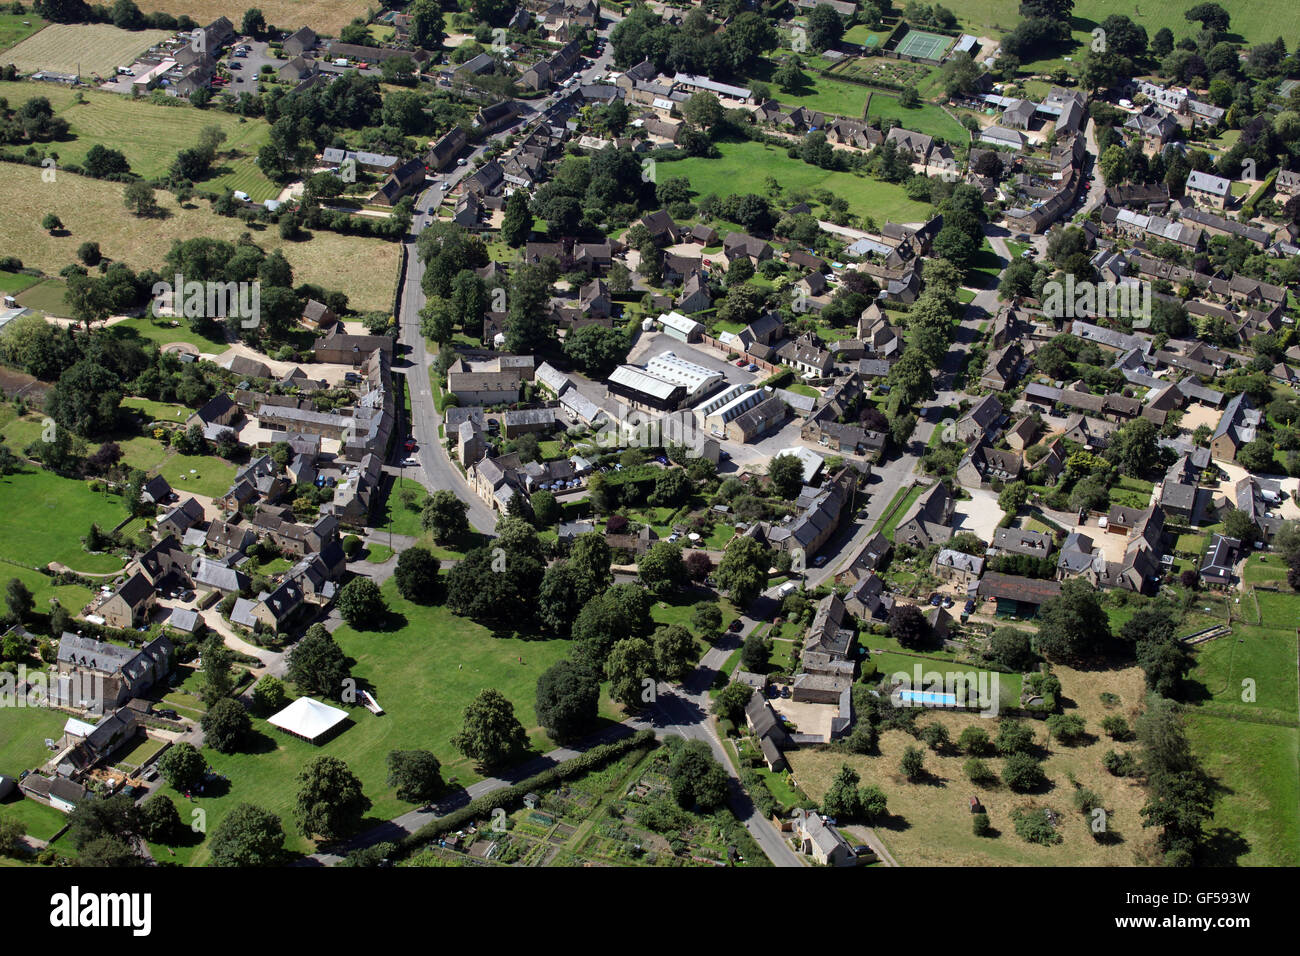 aerial view of the Oxfordshire village of Kingham, UK - Stock Image